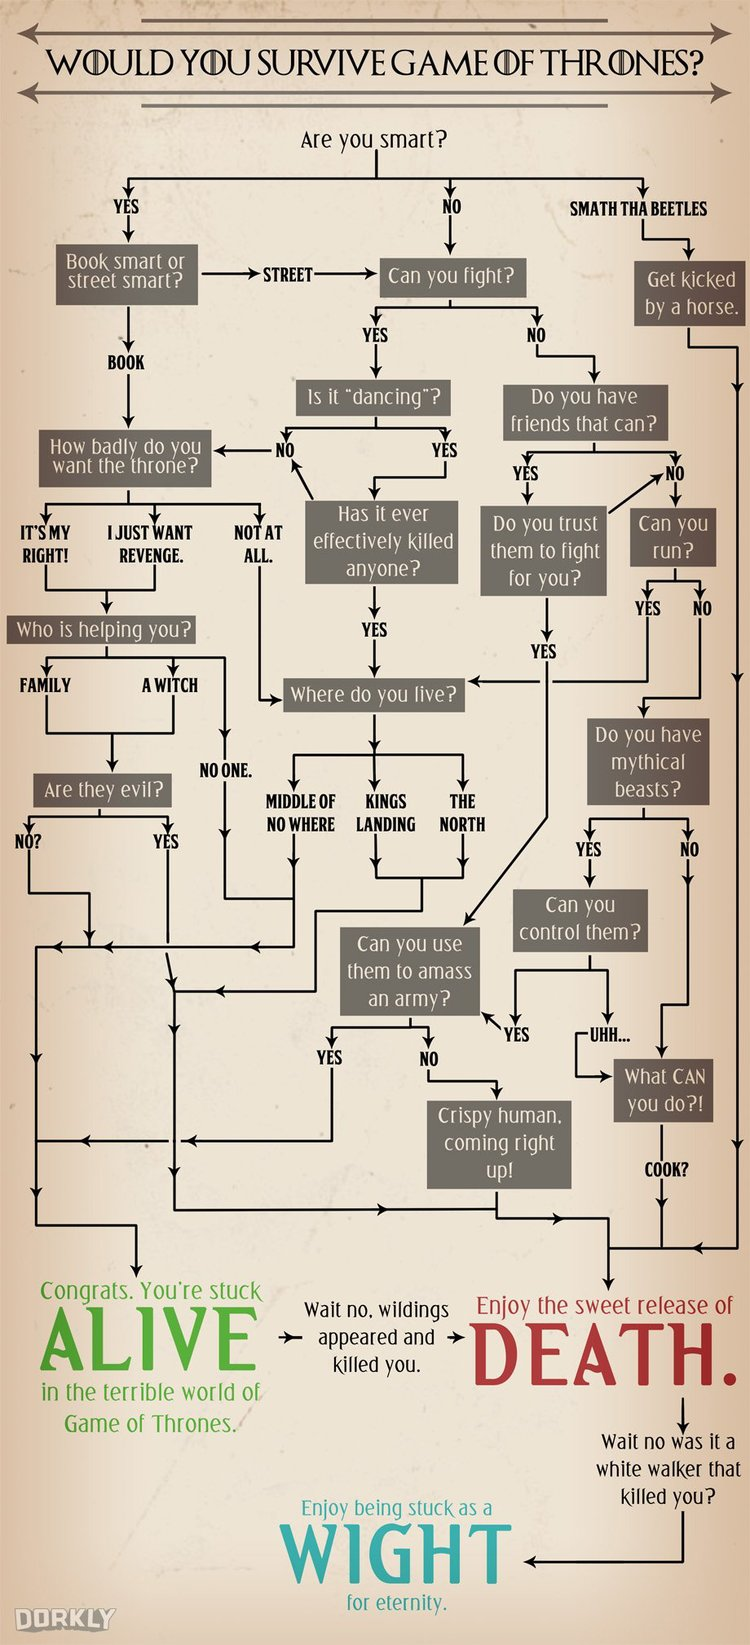 would-you-survive-game-of-thrones-this-flowchart-will-tell-you